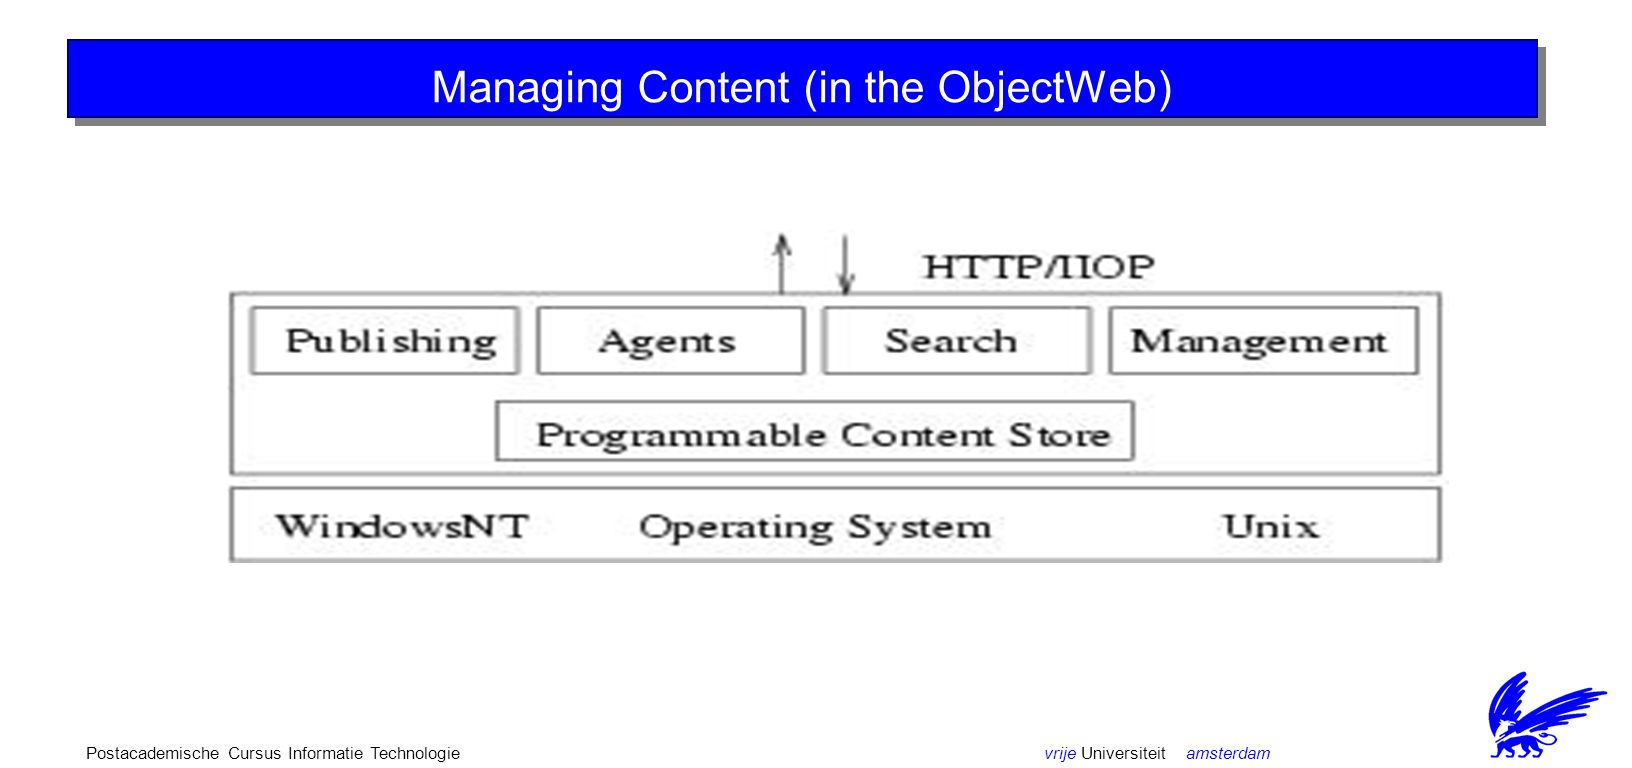 vrije Universiteit amsterdamPostacademische Cursus Informatie Technologie The ObjectWeb (1) The rest of us -- Netscape ONE Managing Content Software architecture